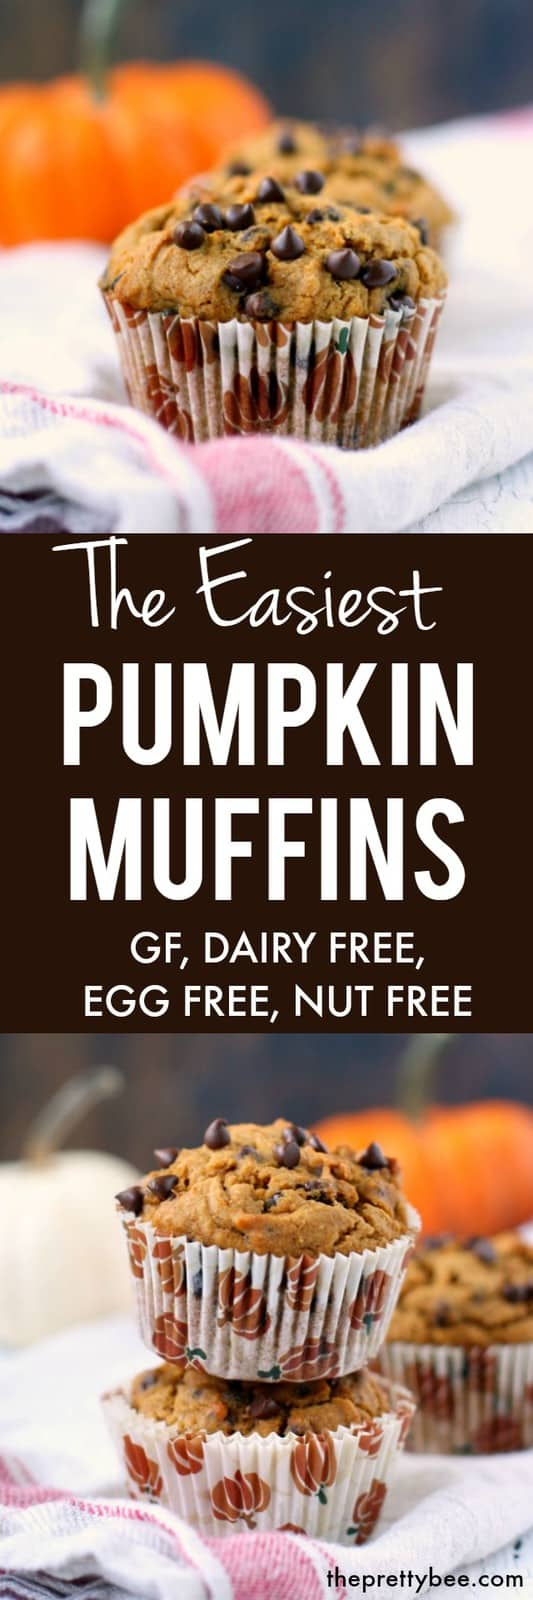 Delicious and easy gluten free, vegan, dairy free pumpkin muffins are just the thing to bake this fall! #dairyfree #vegan #glutenfree